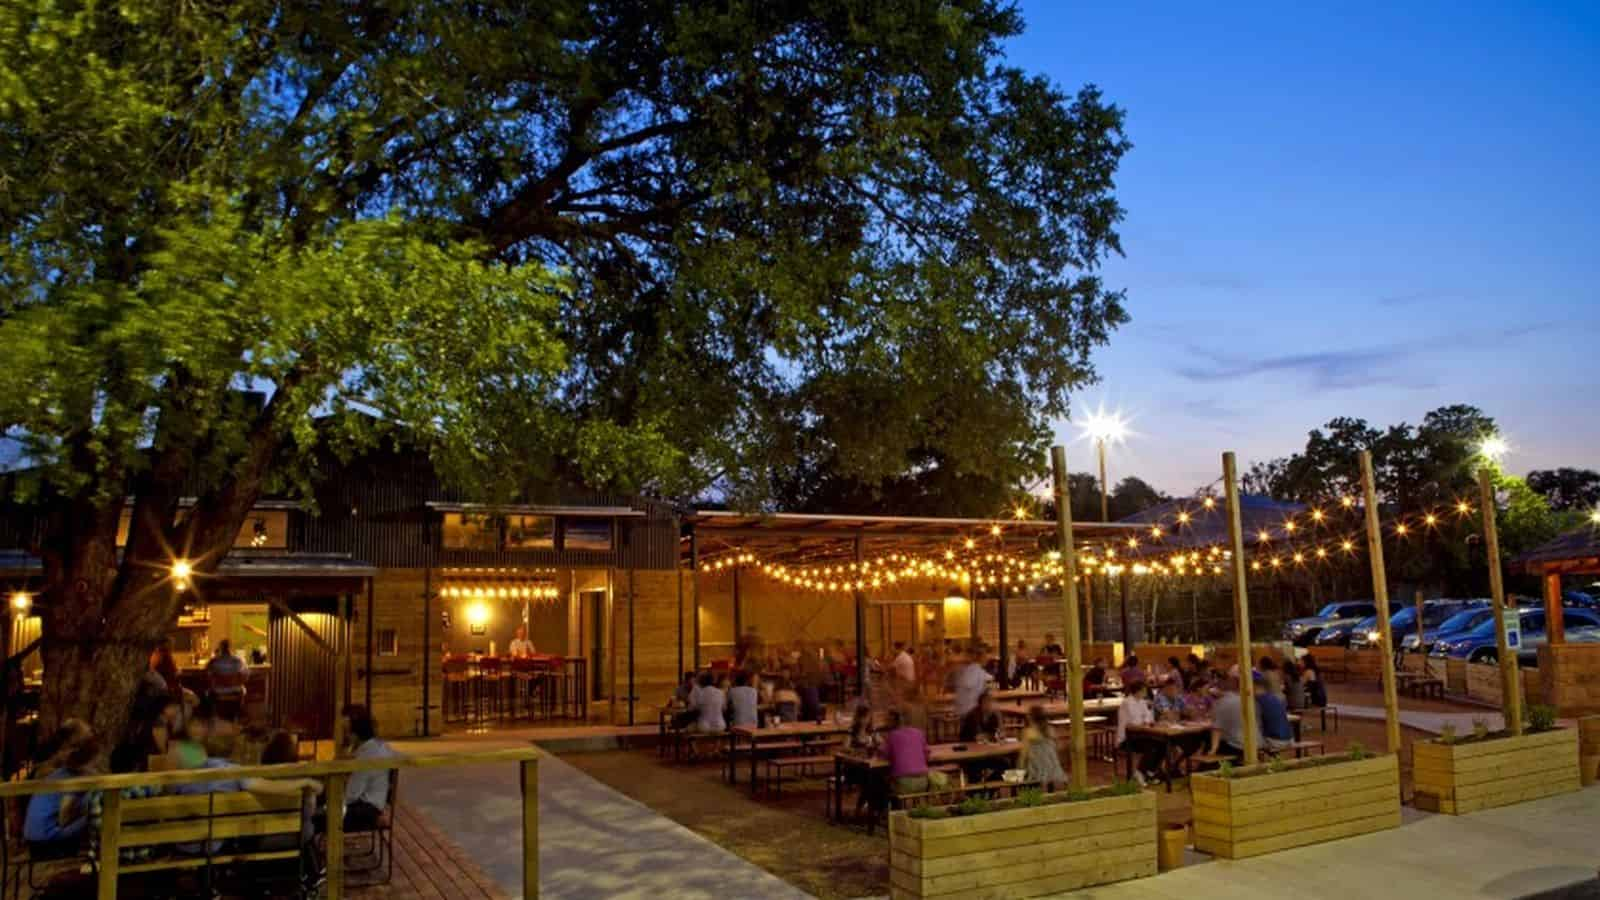 But Before We Discuss The Menu, Look At This Outdoor Patio. Doesnu0027t It Look  Great For A Casual Outdoor Meal?